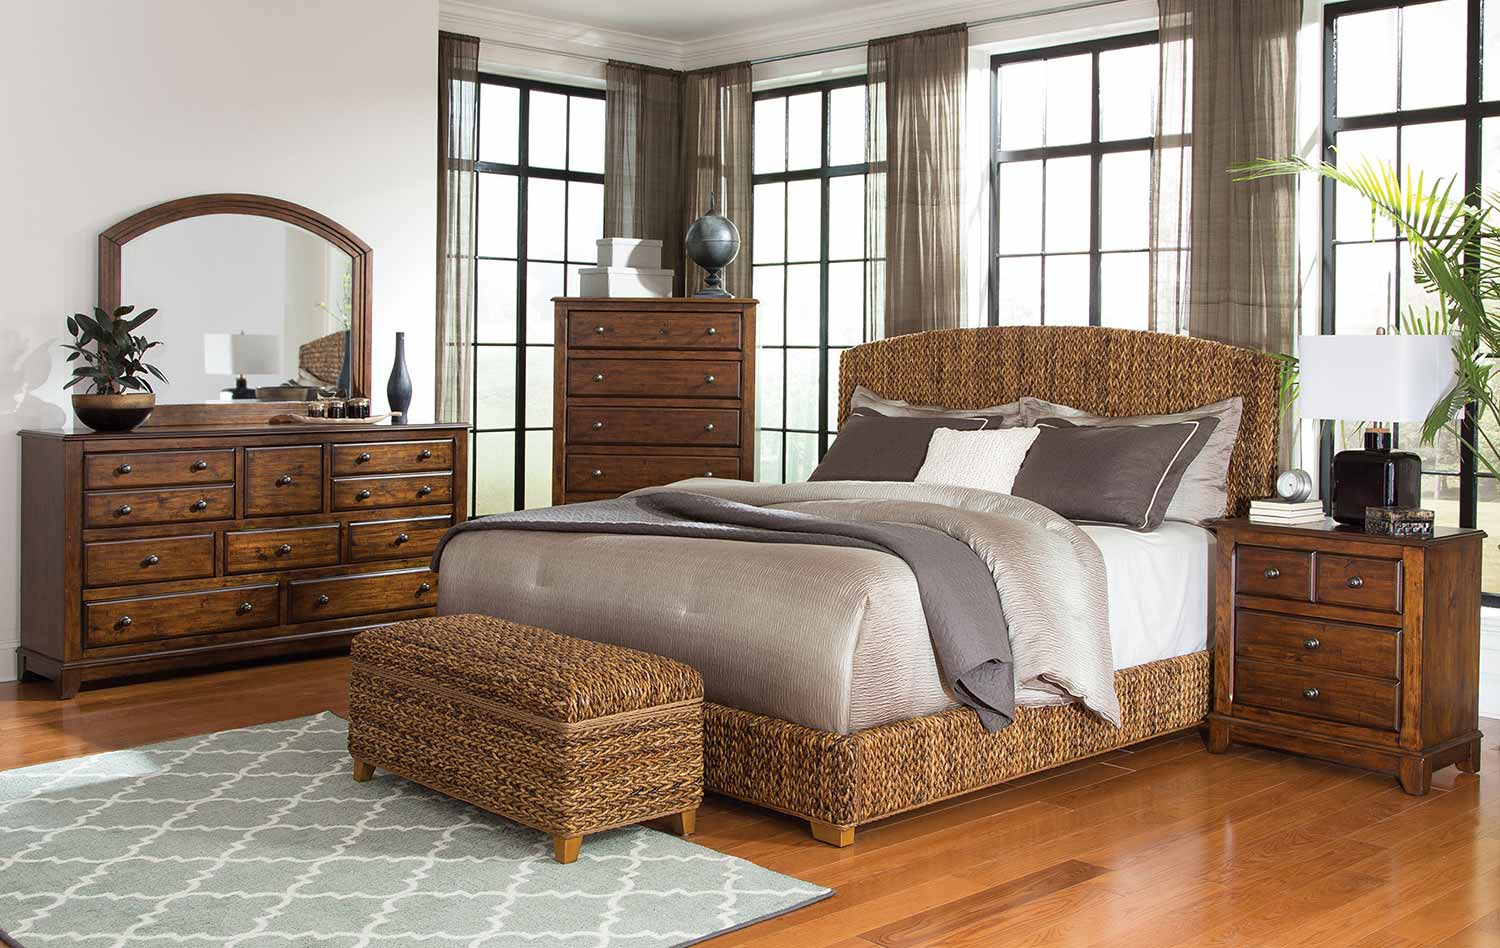 Coaster Laughton Abaca Panel Bedroom Set - Natural/Cocoa Brown